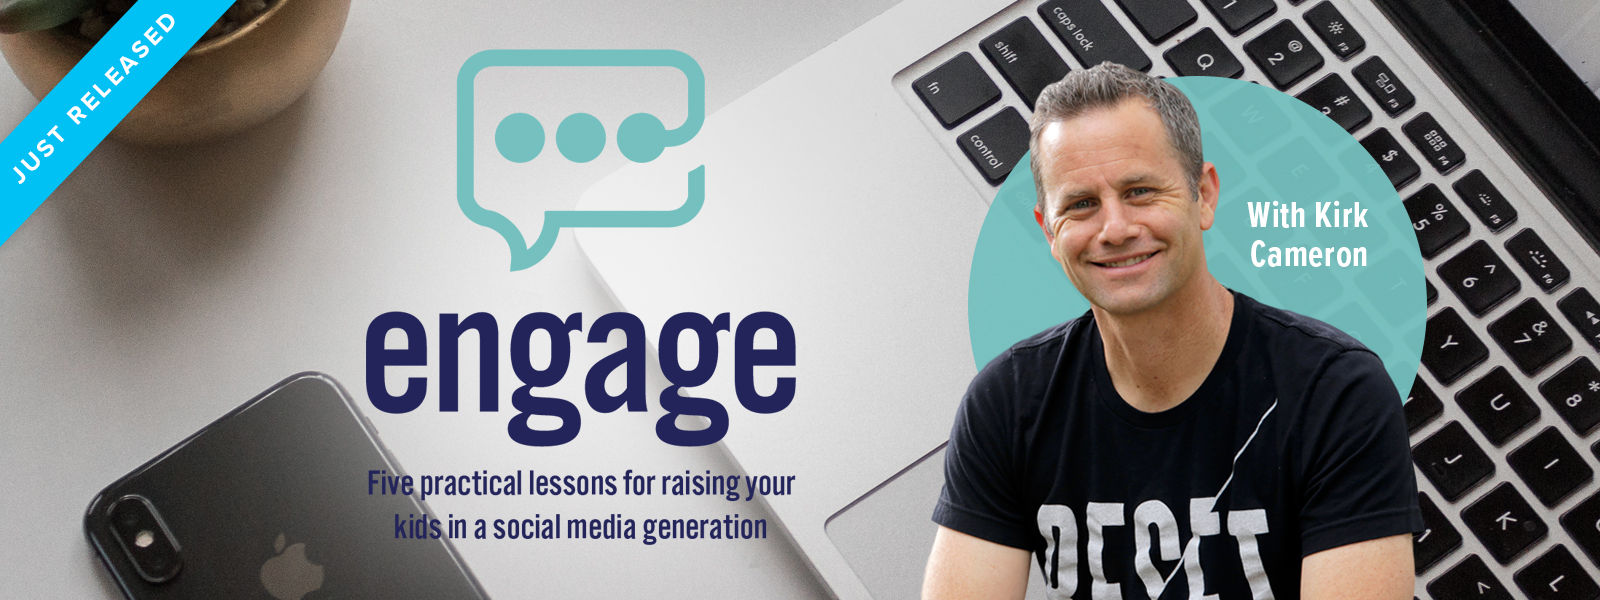 Engage with Kirk Cameron